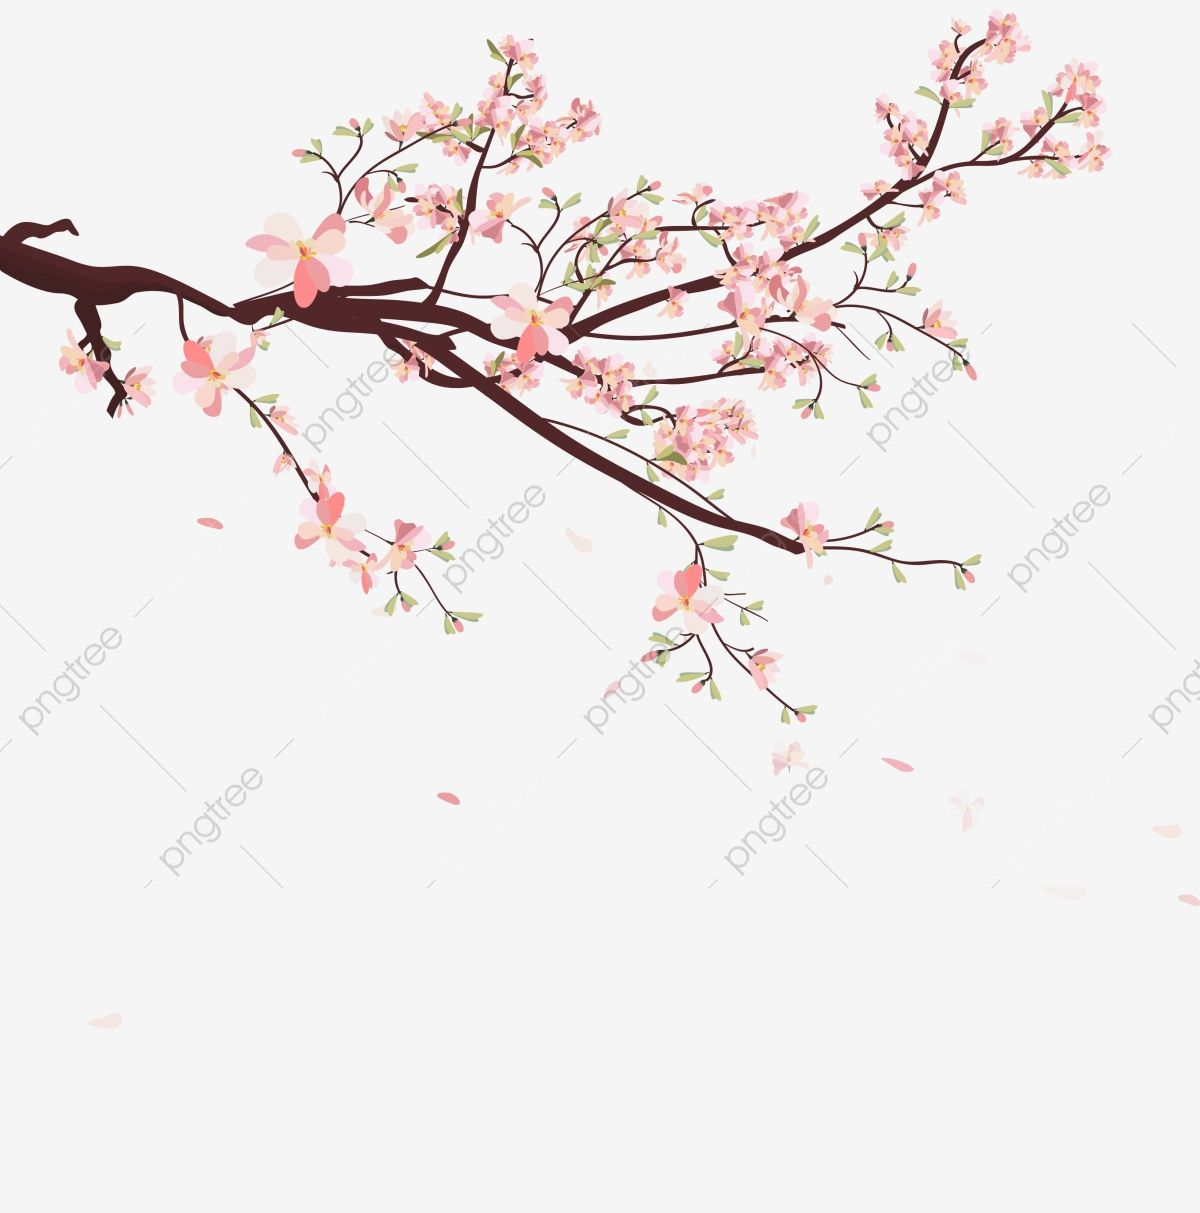 Download This Sakura Background With Blossom Cherry Branches Nature Clipart Sakura Blossom Transparent Png Or Vecto In 2021 Cherry Blossom Flower Backgrounds Sakura